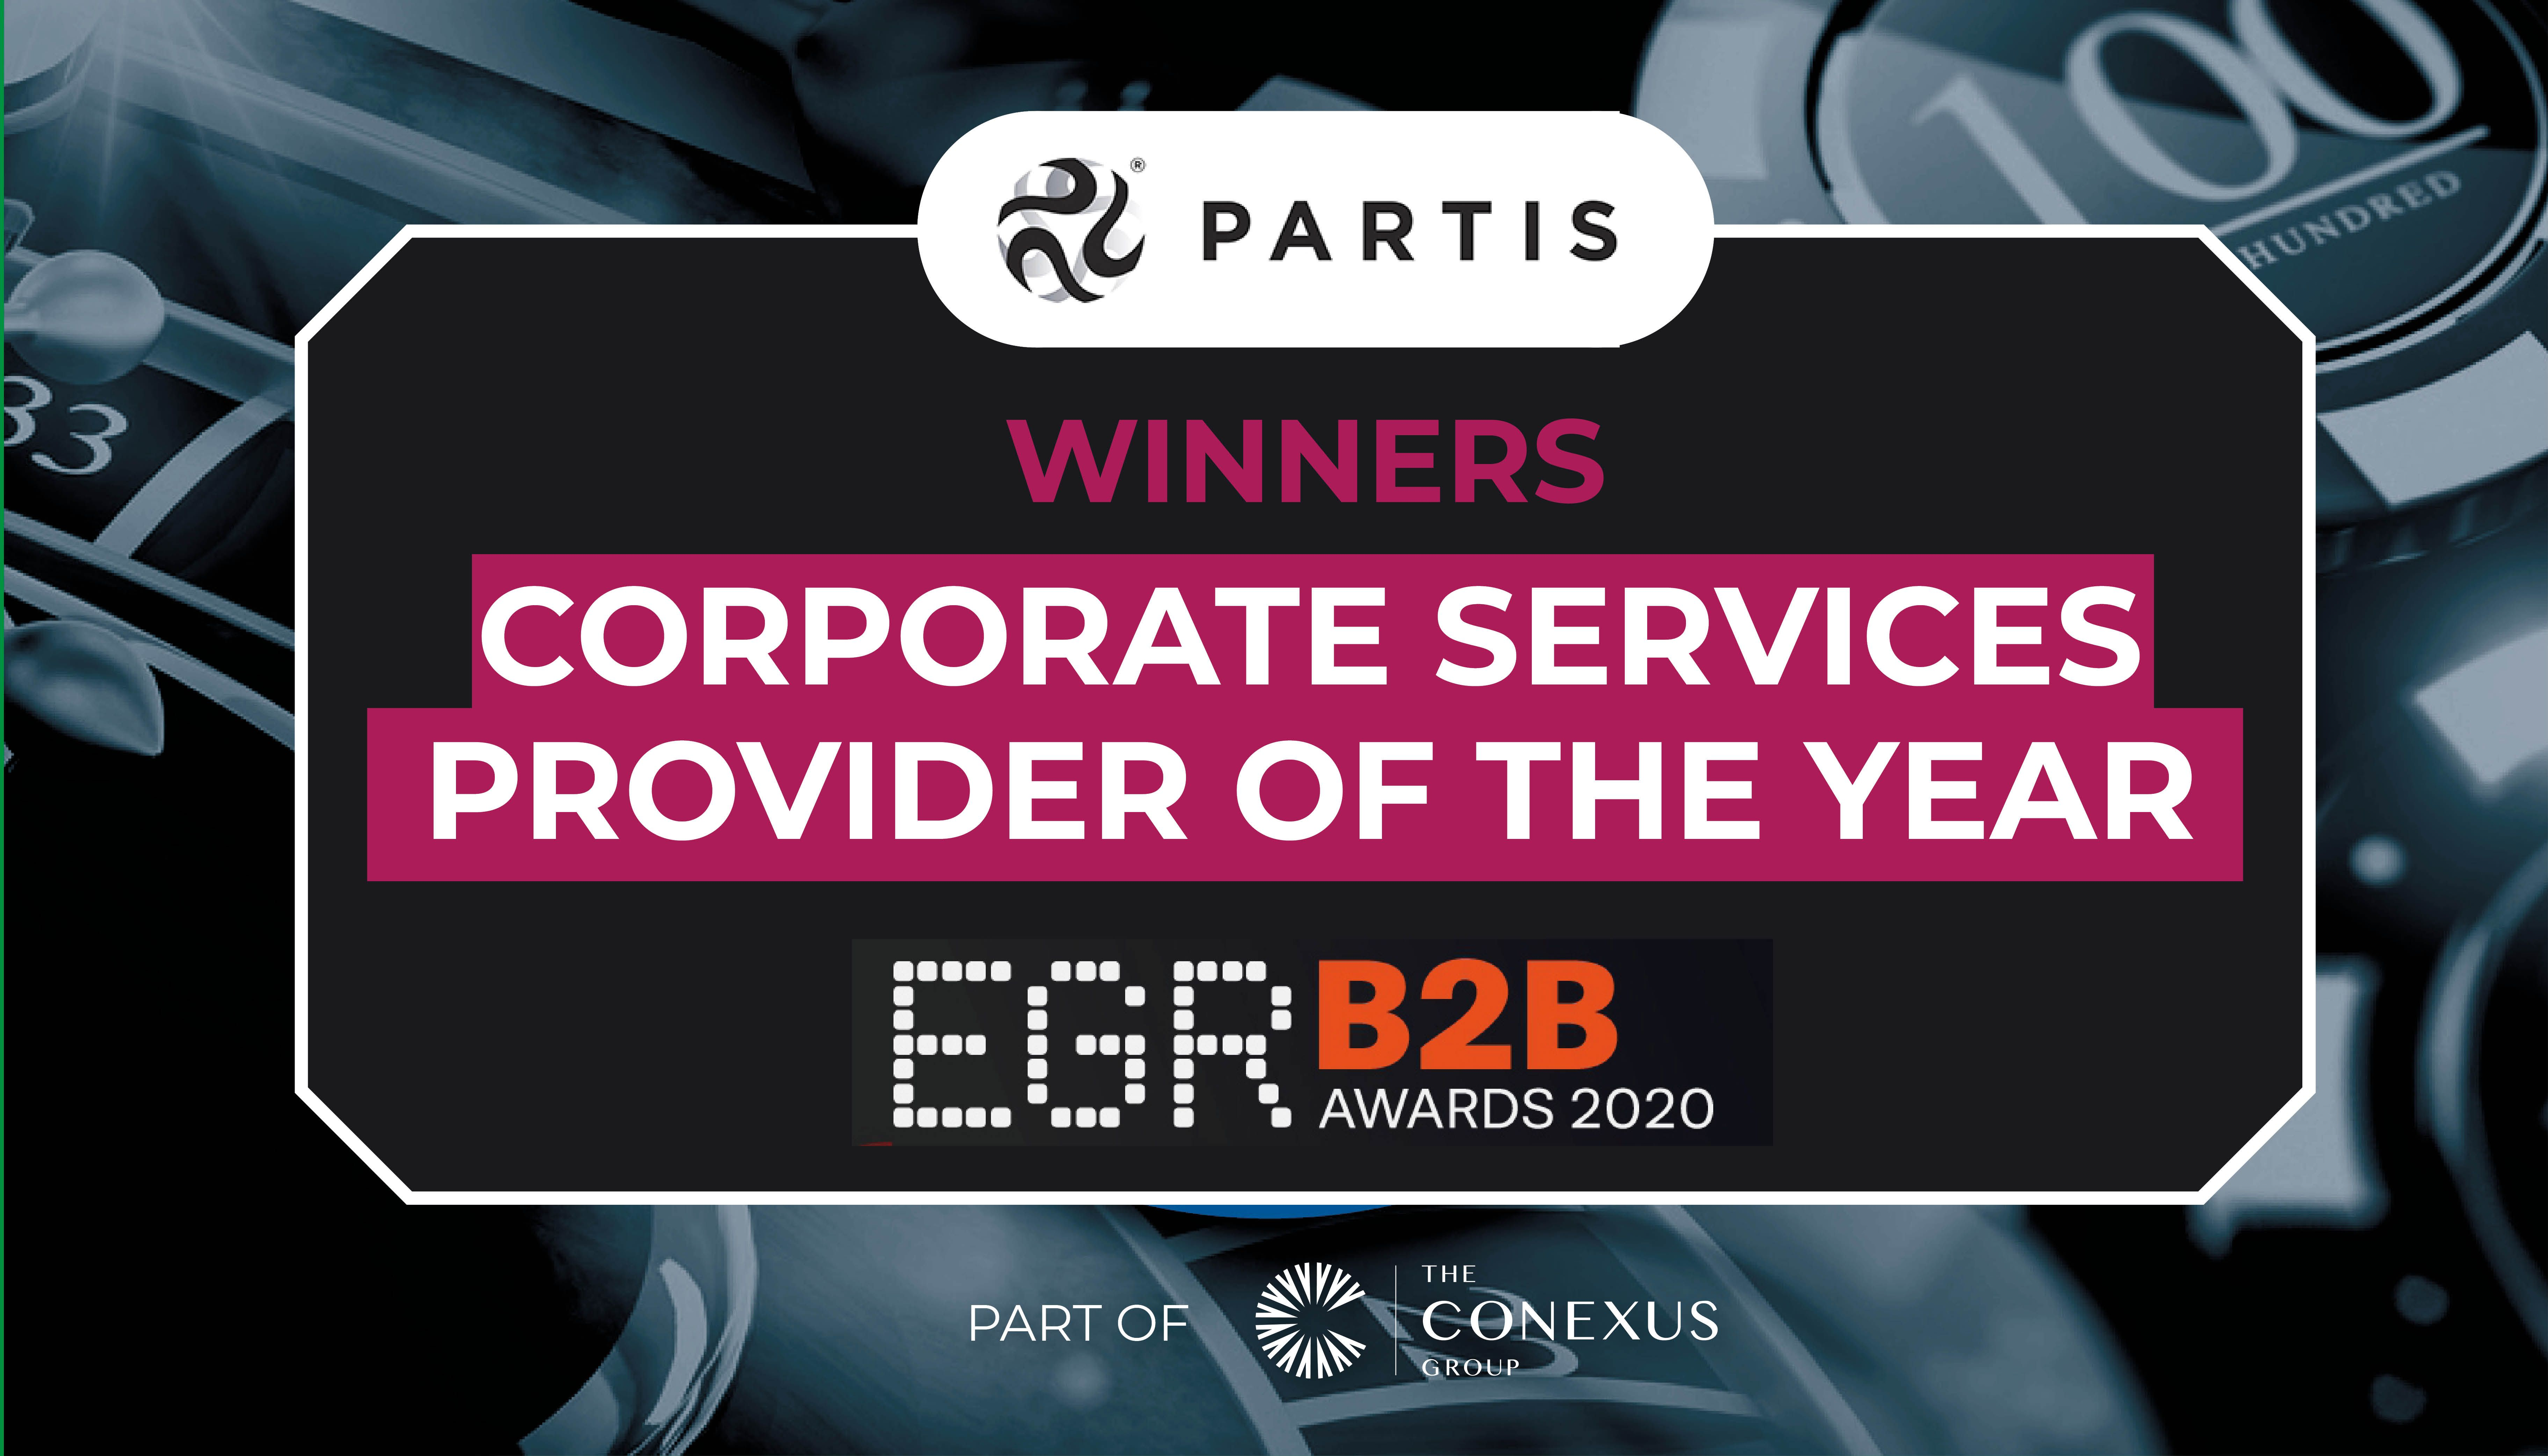 Partis Wins EGR Corporate Services Supplier Award 2020